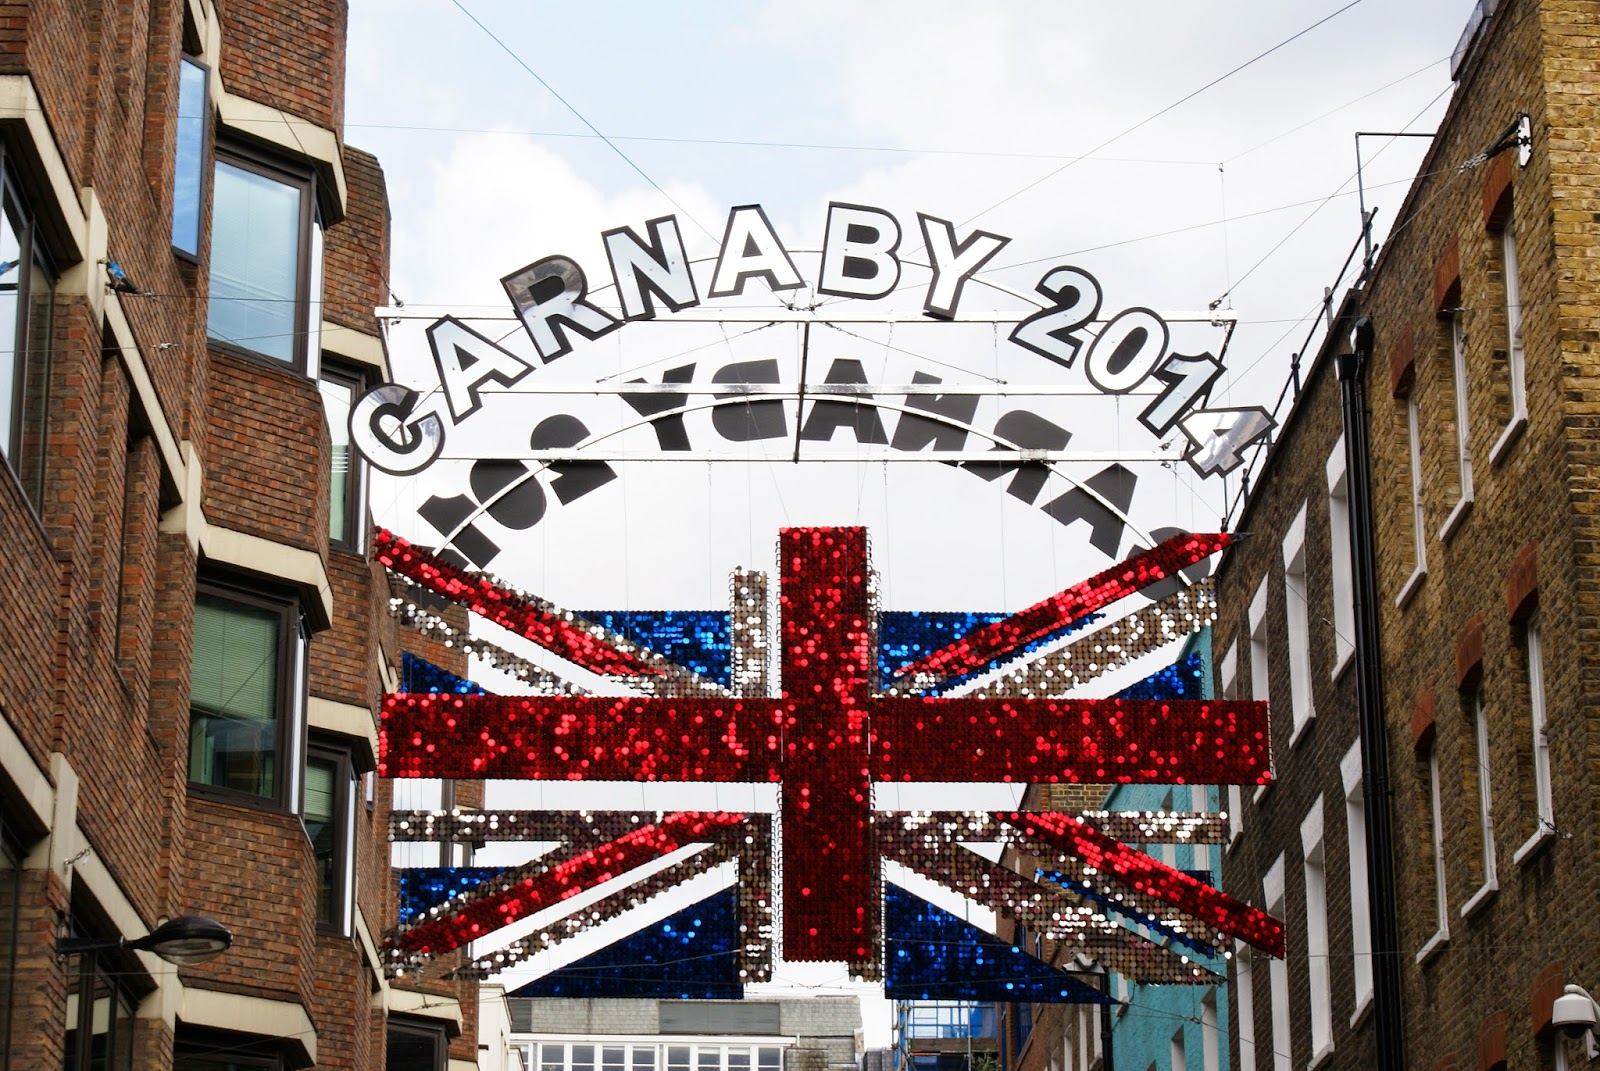 carnaby street soho london uk england britain